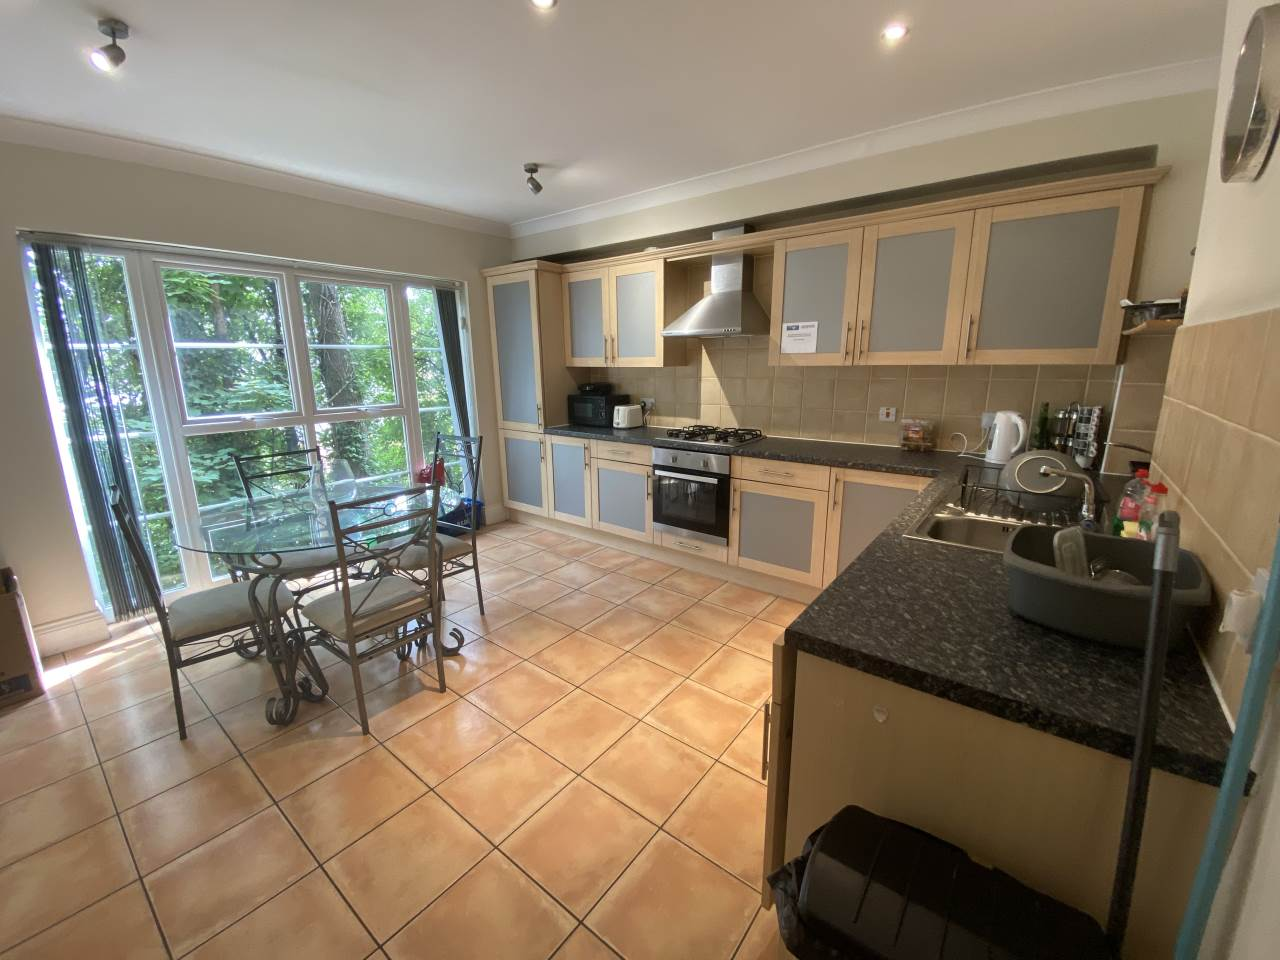 1 bed house / flat share to rent, Sutton Coldfield - Property Image 1